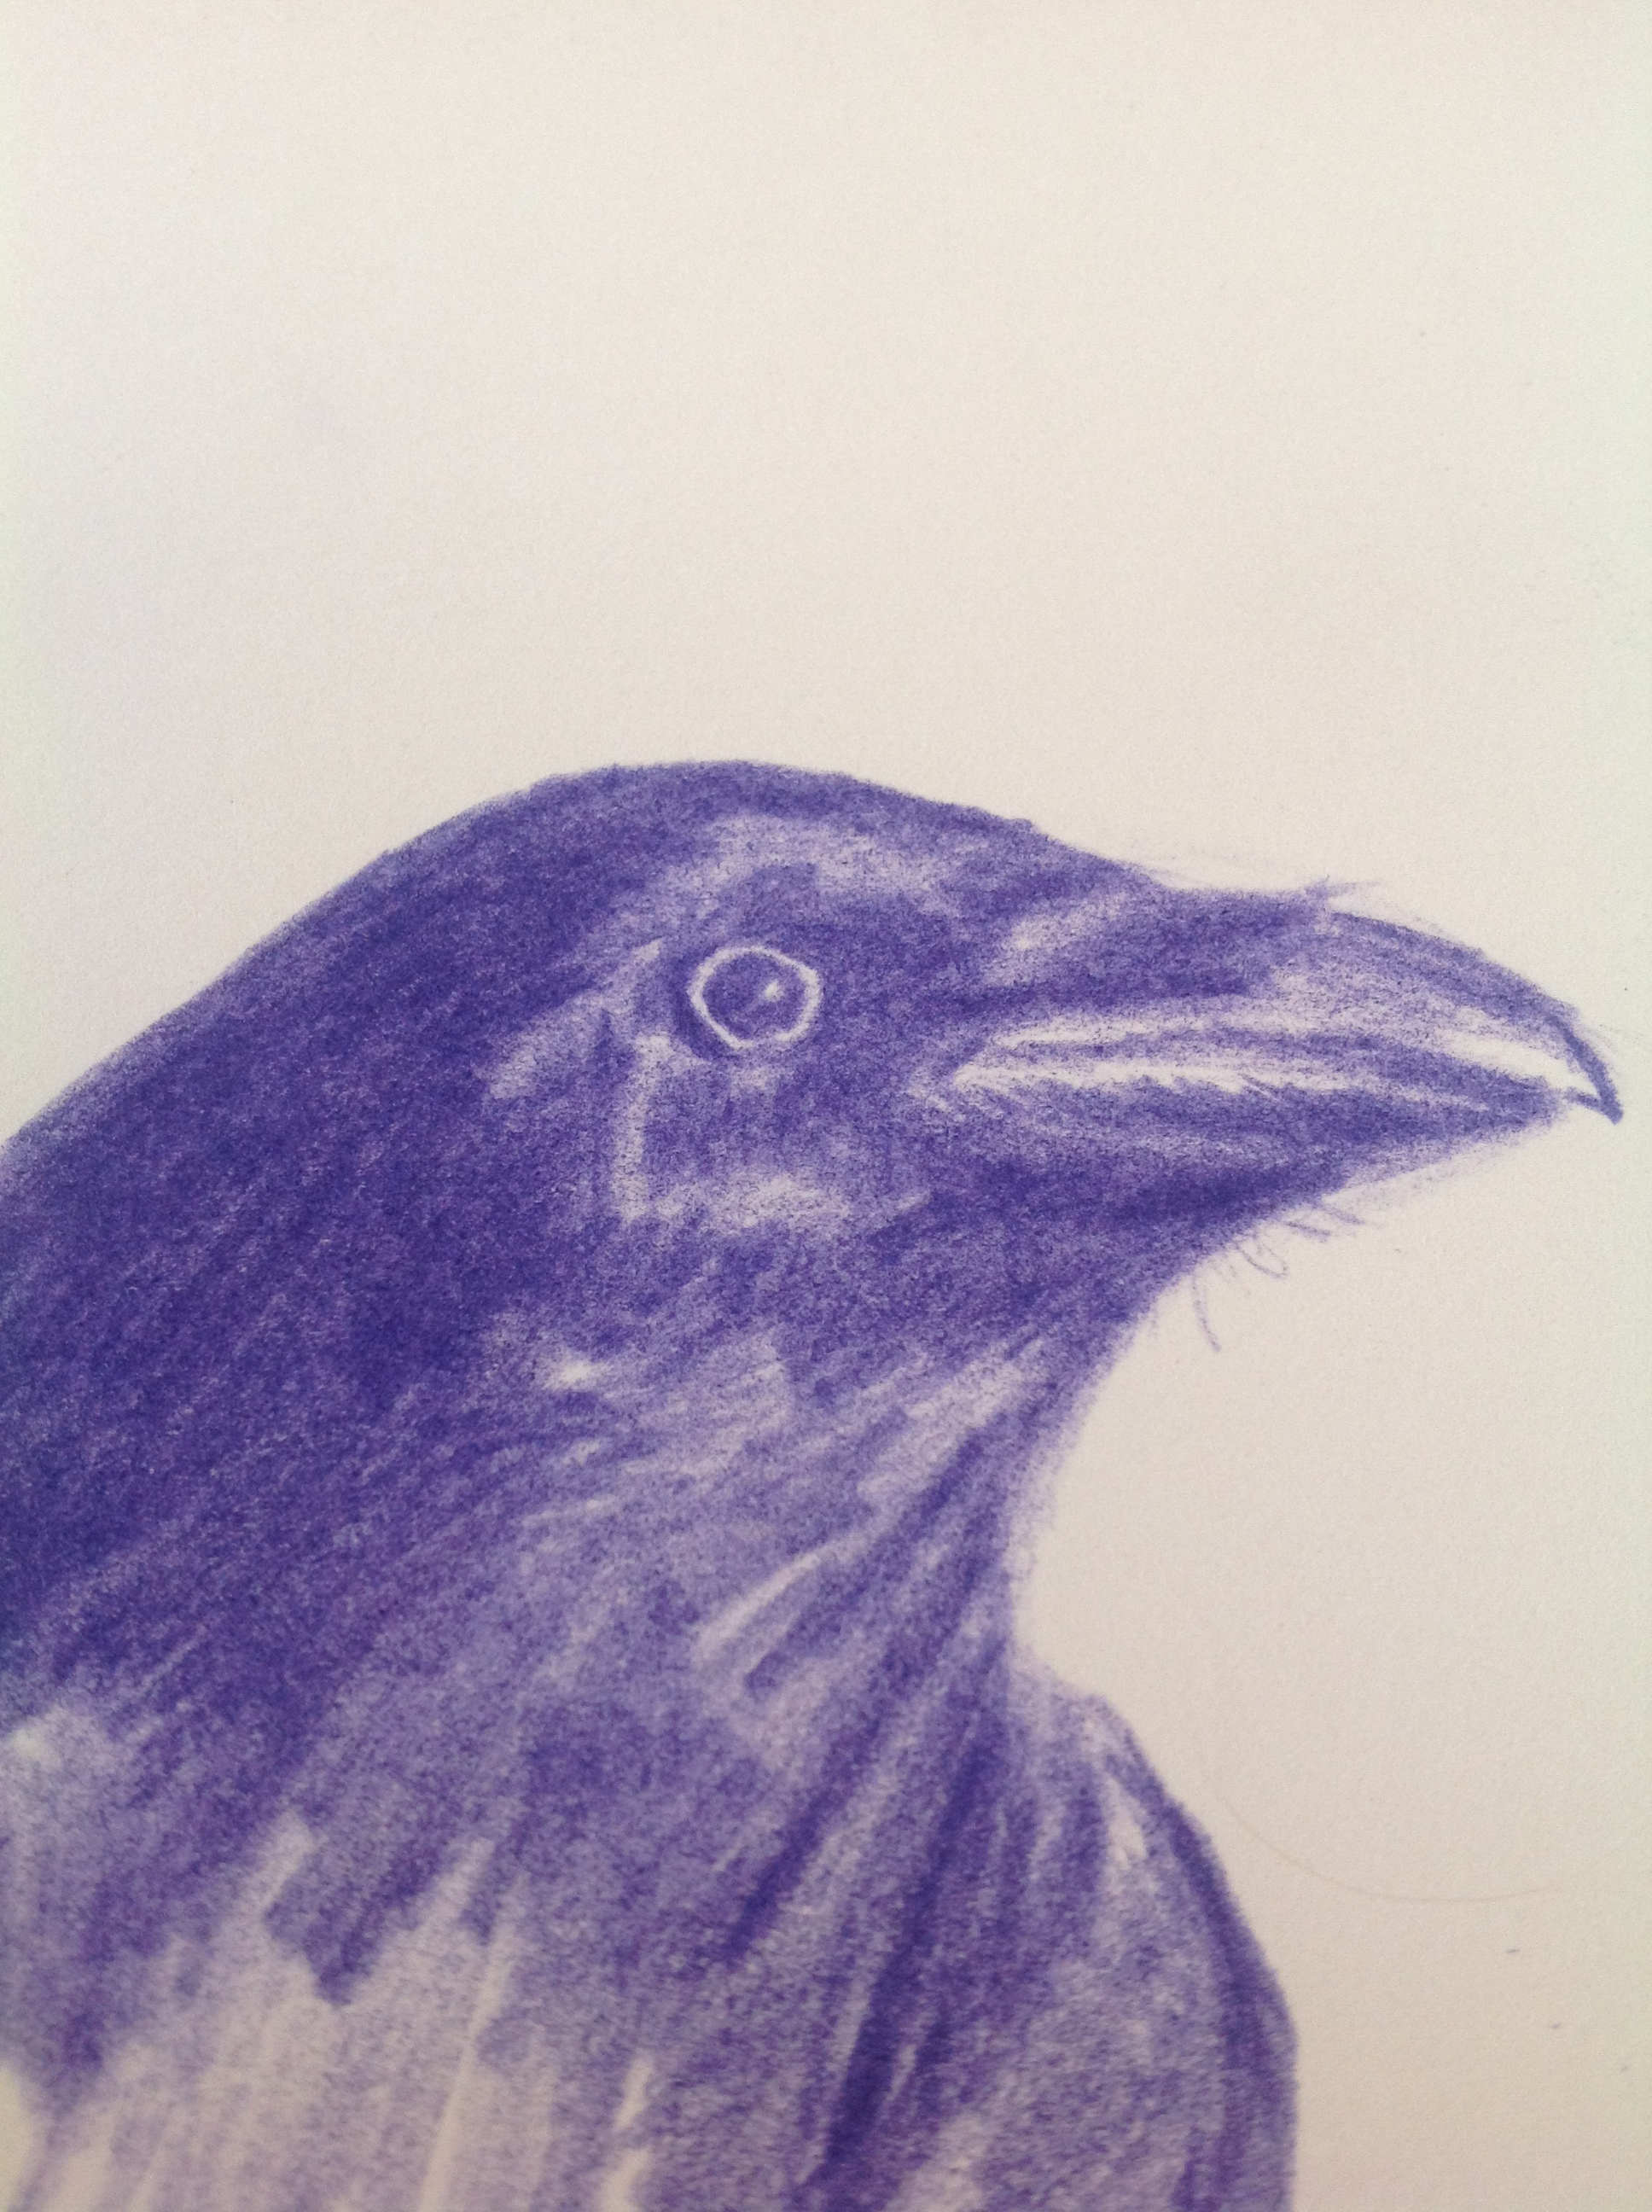 Drawn quoth sketch Upways Raven day Create every